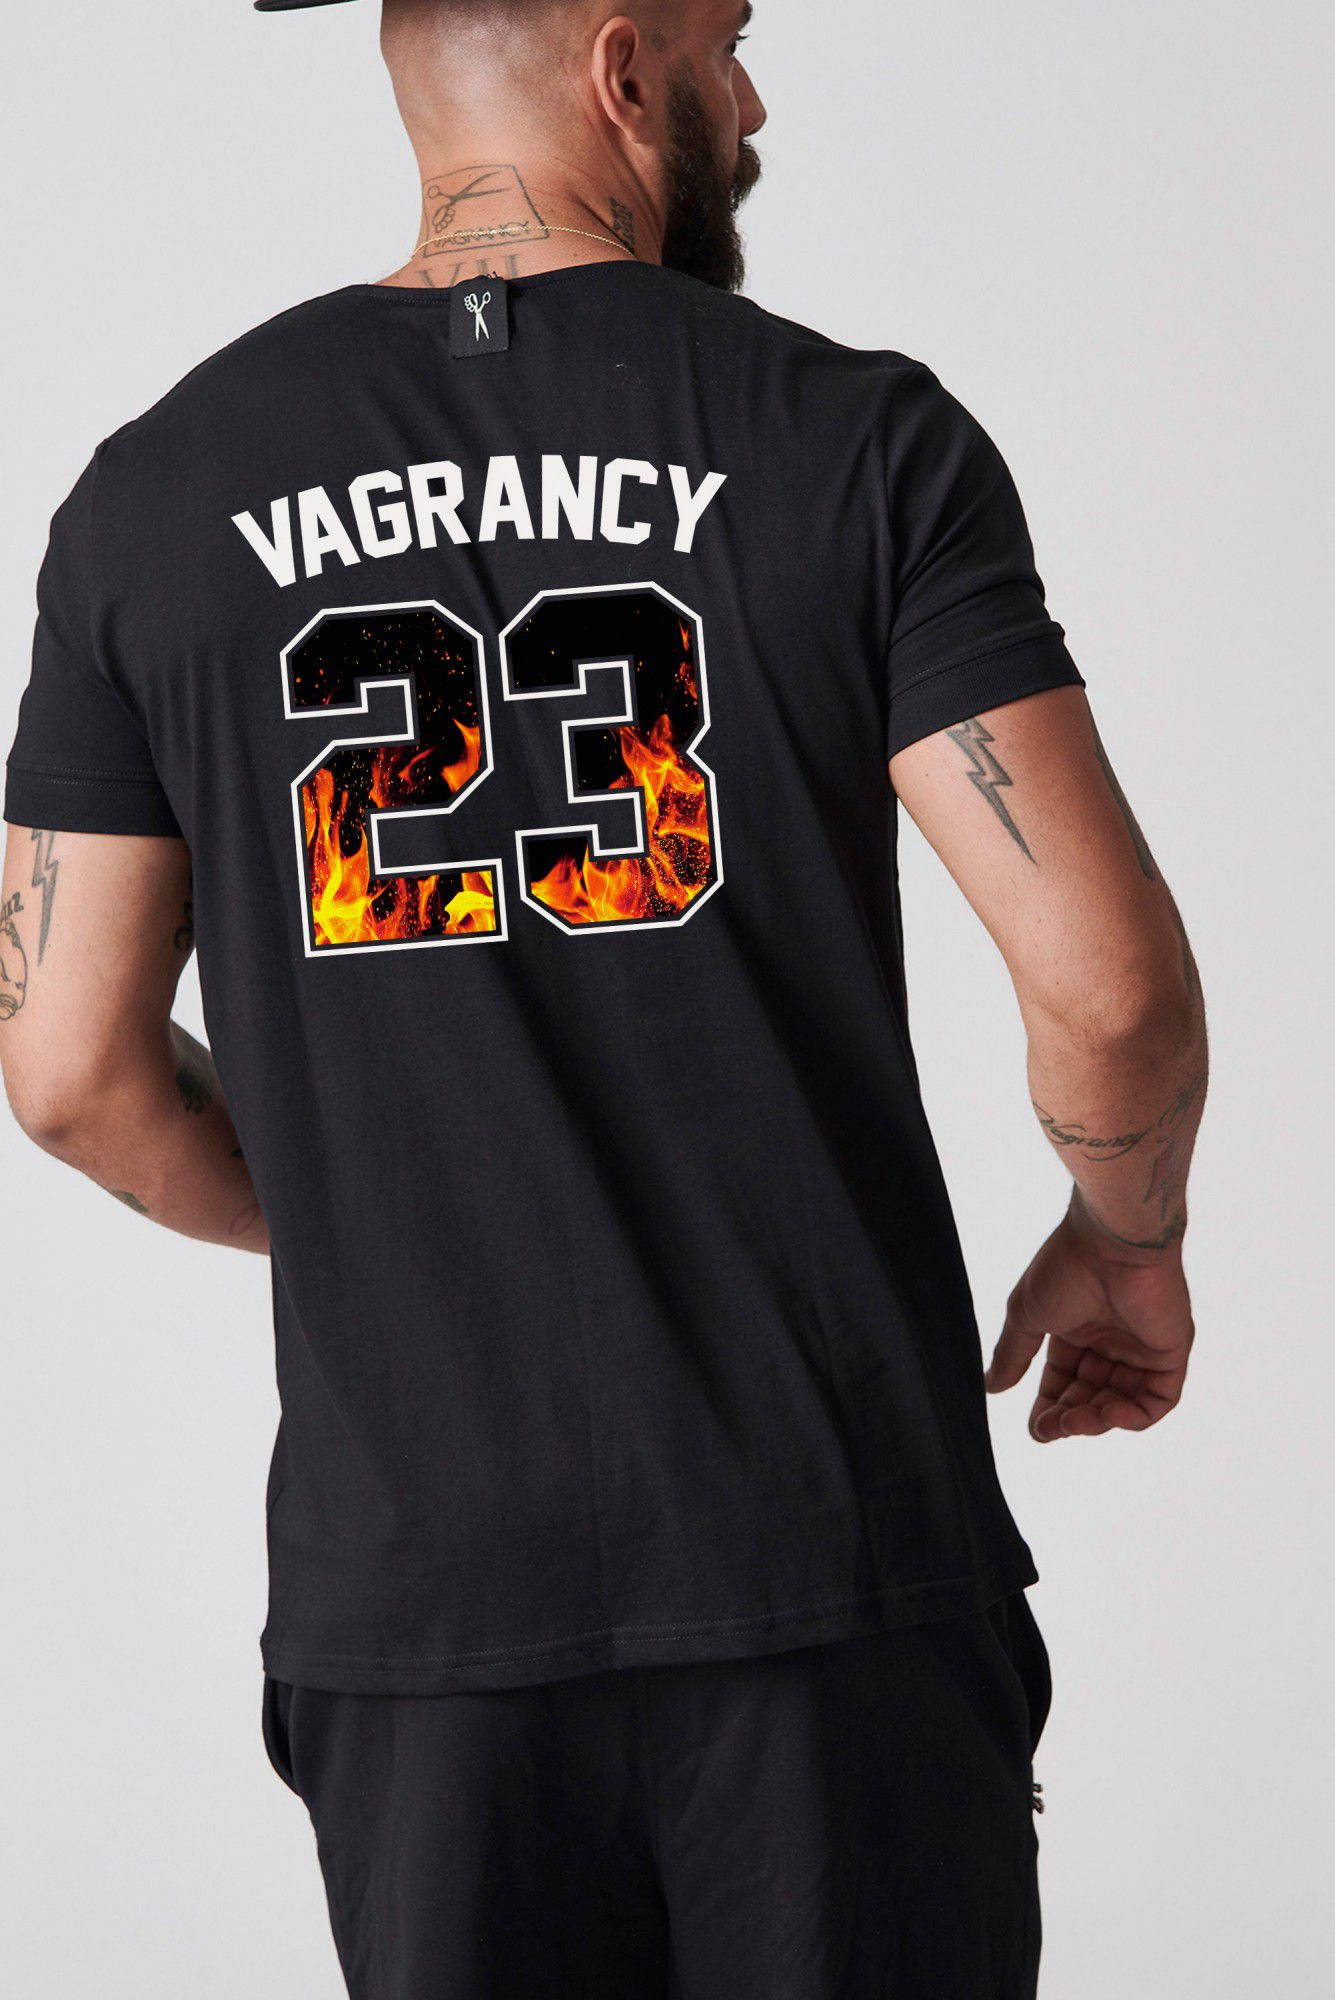 23 Vagrancy T-shirt